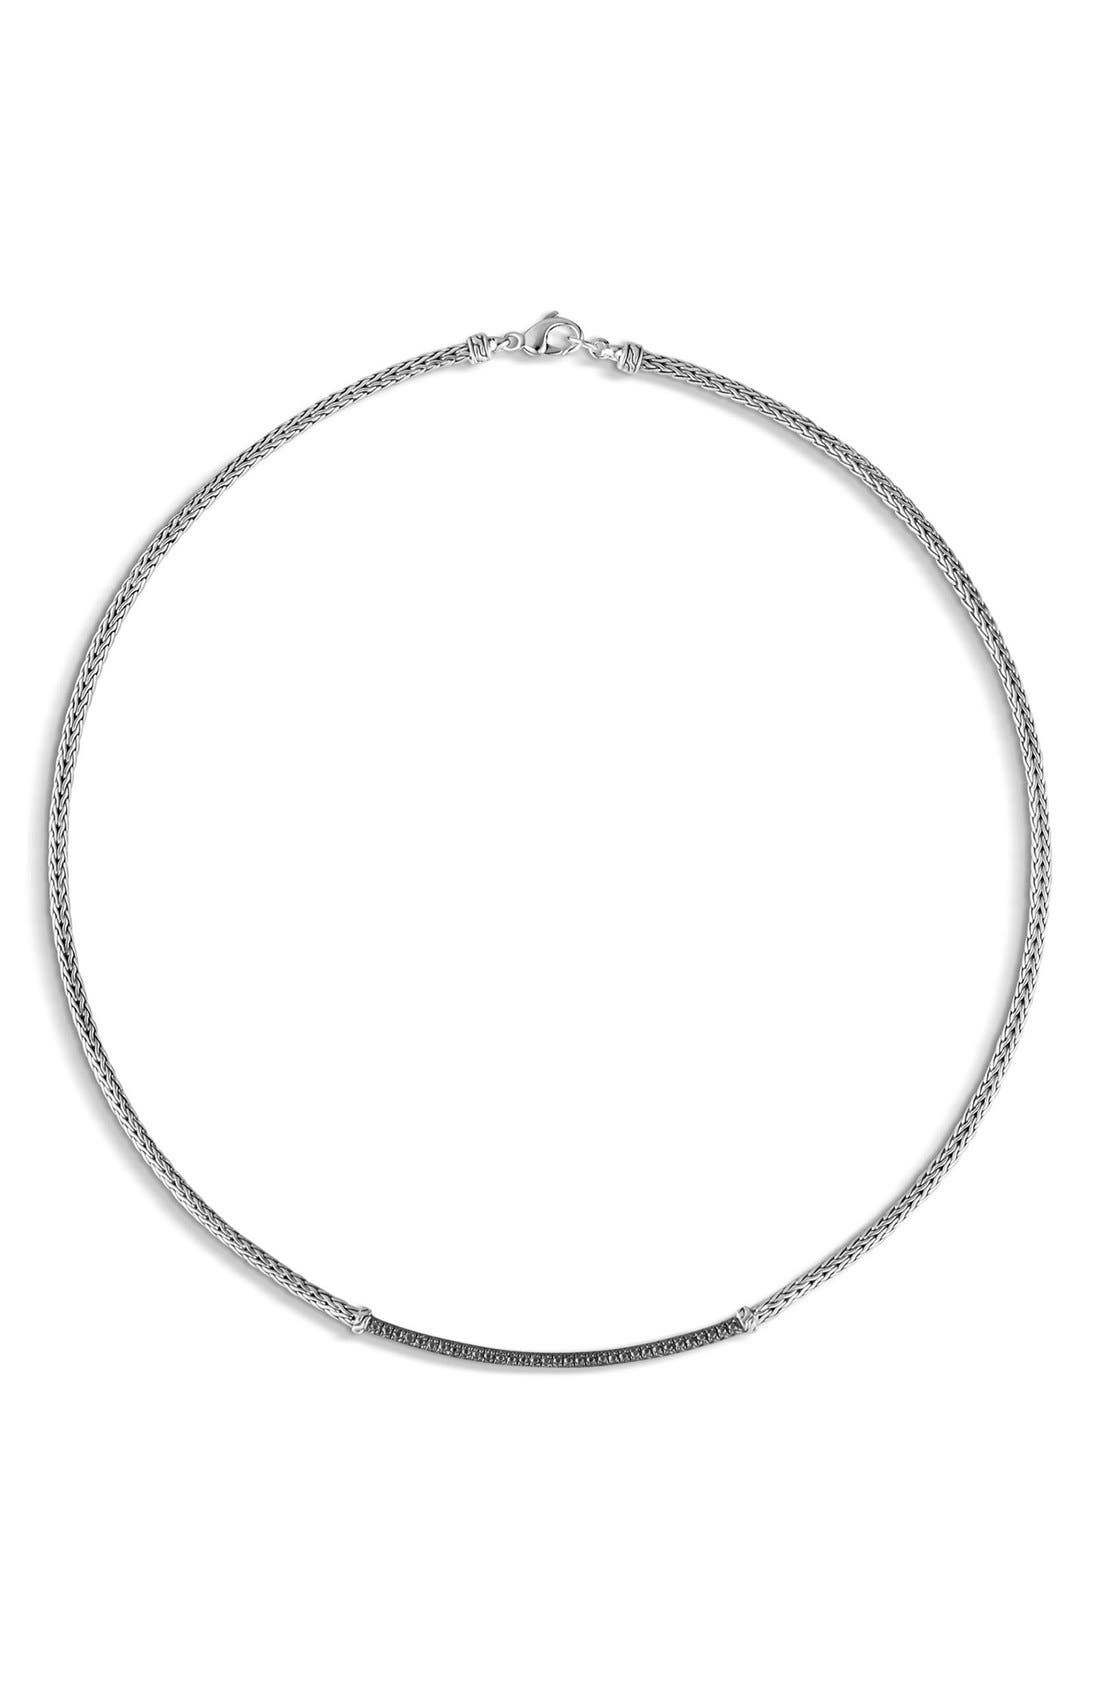 JOHN HARDY Classic Chain Collar Necklace